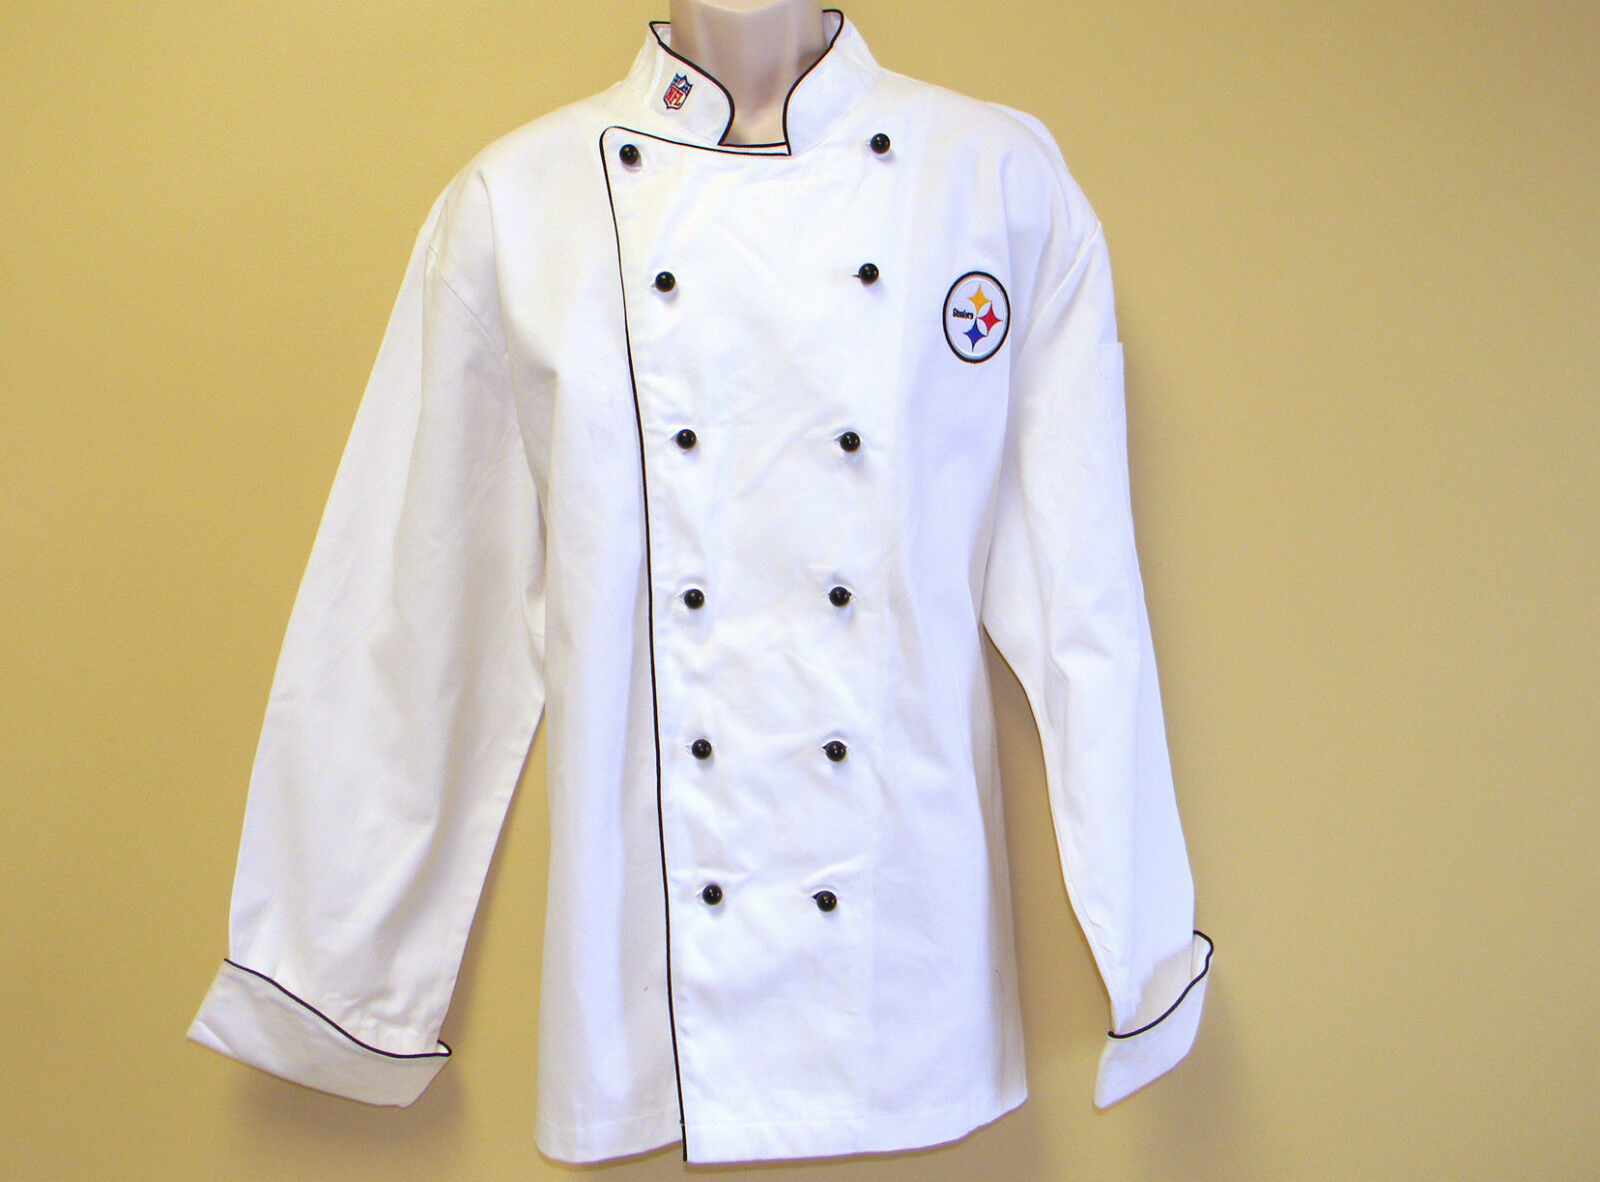 reputable site 96abb 56d98 NFL Pittsburgh Steelers Premium Chef Coat 100 Cotton L Size Football Chief